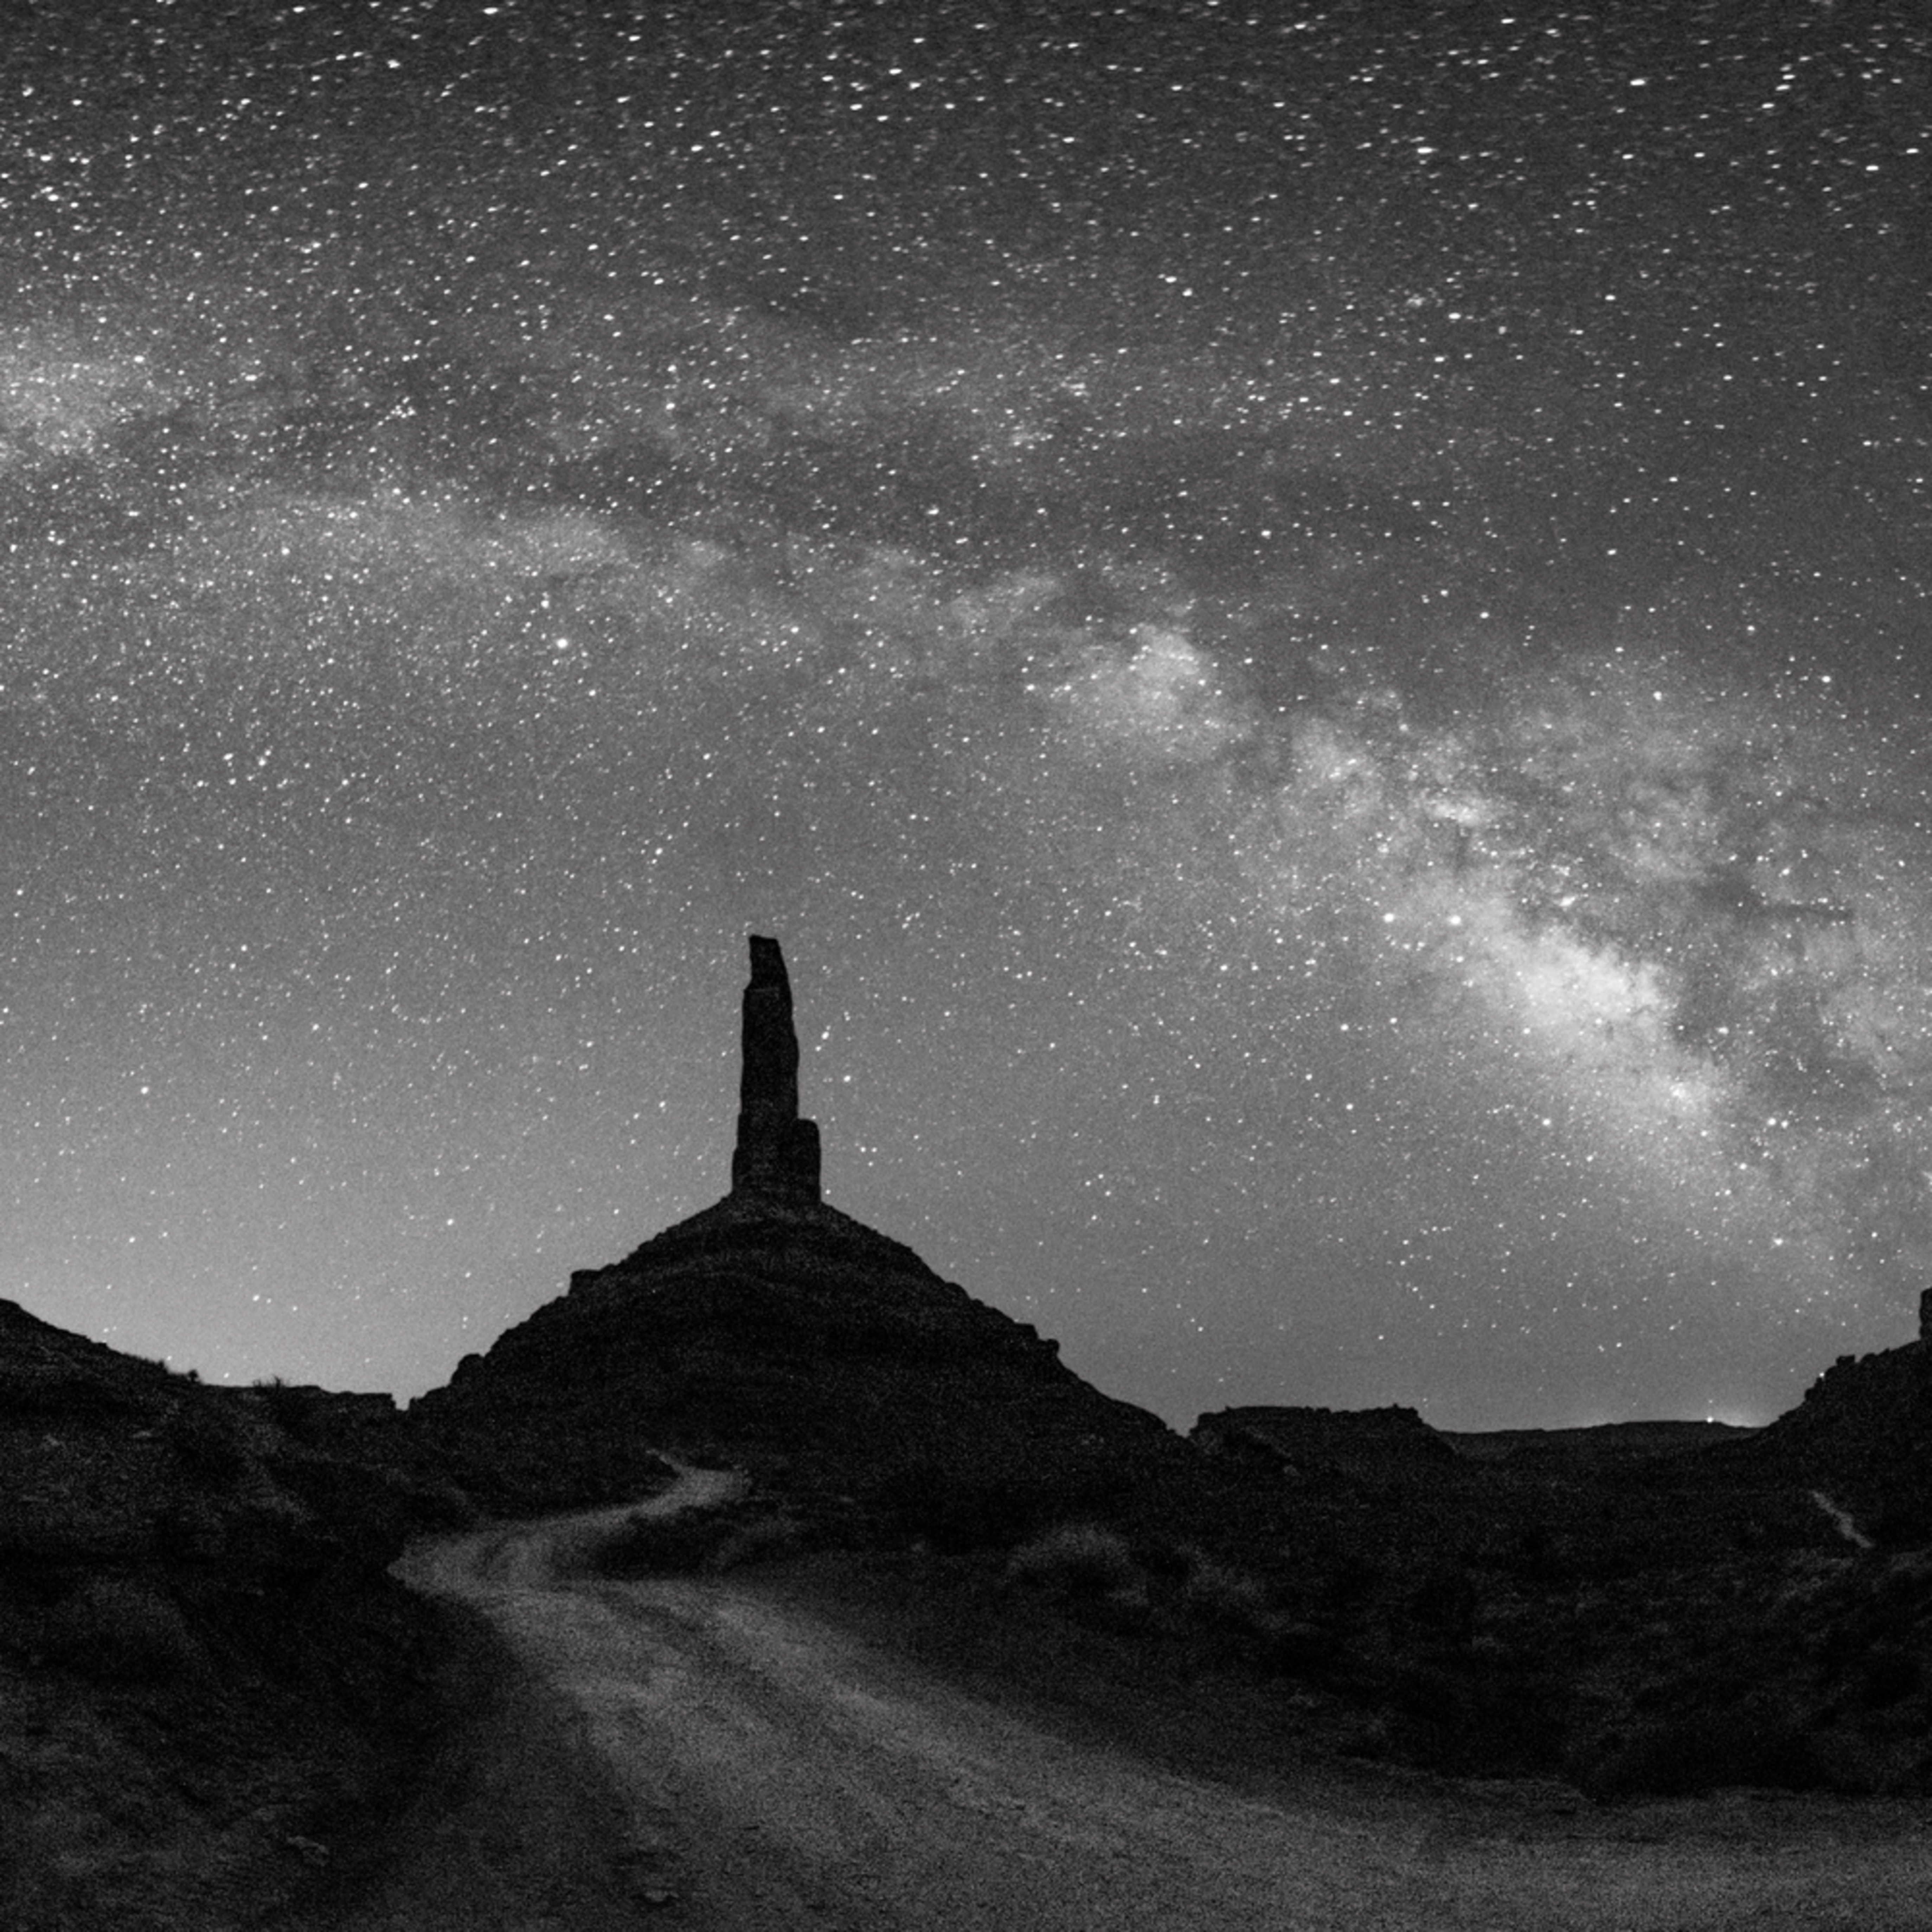 Milky way in valley of gods aii0po